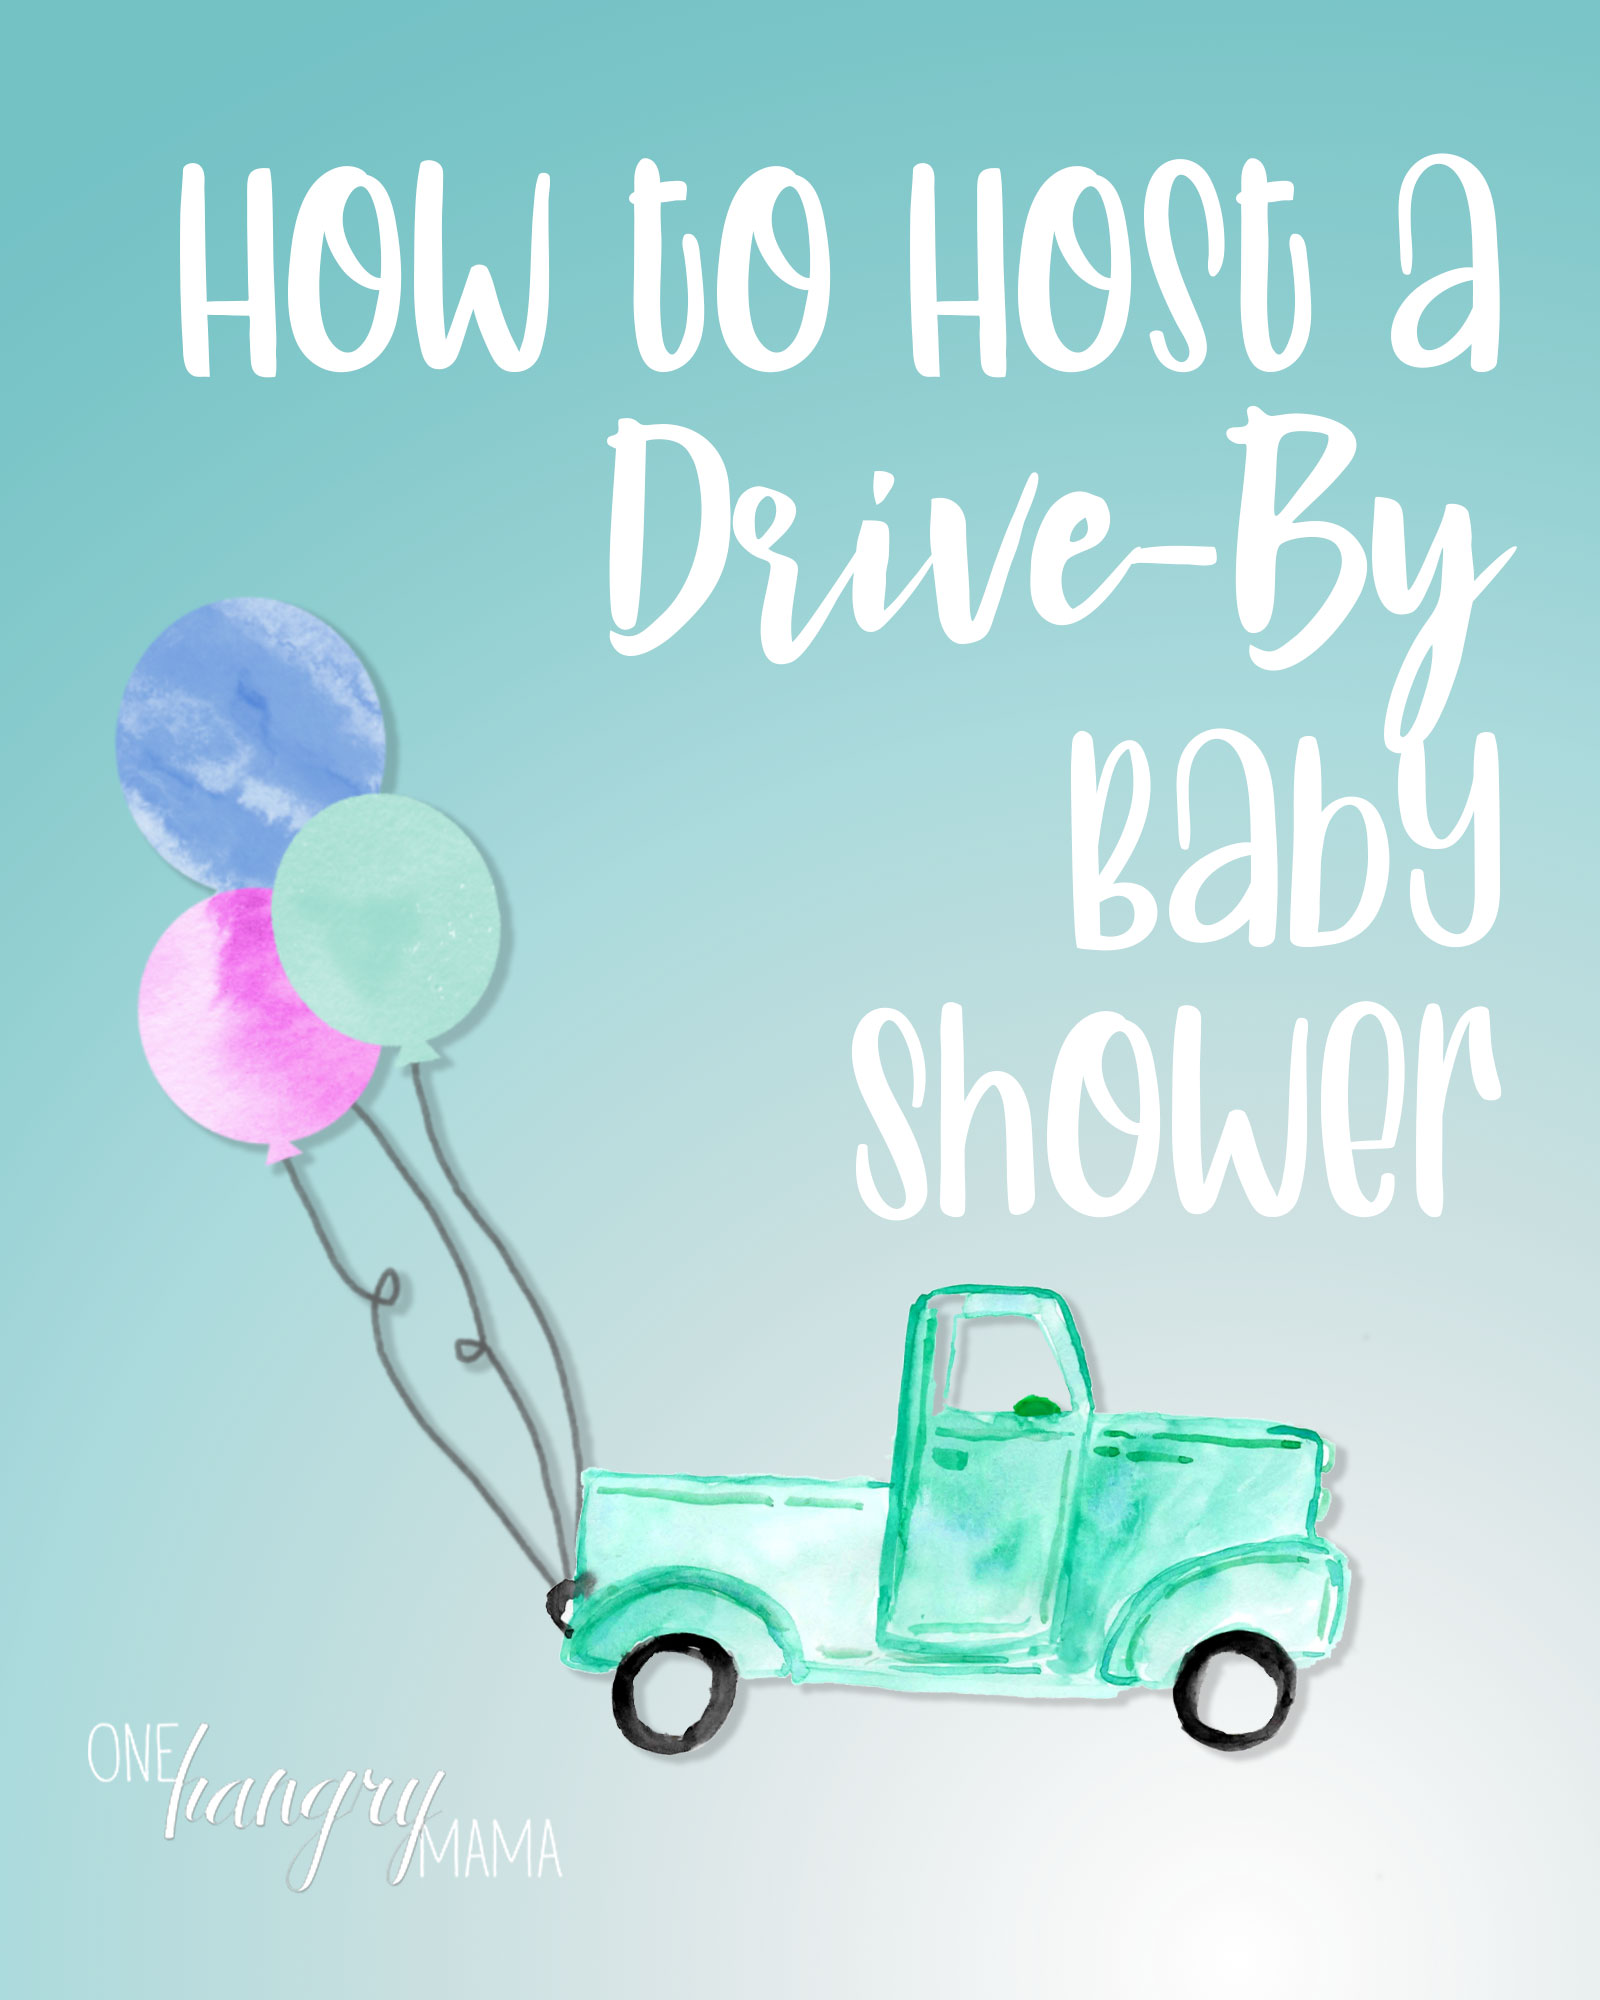 A drive-by baby shower is a great way to celebrate moms-to-be while maintaining social distancing.